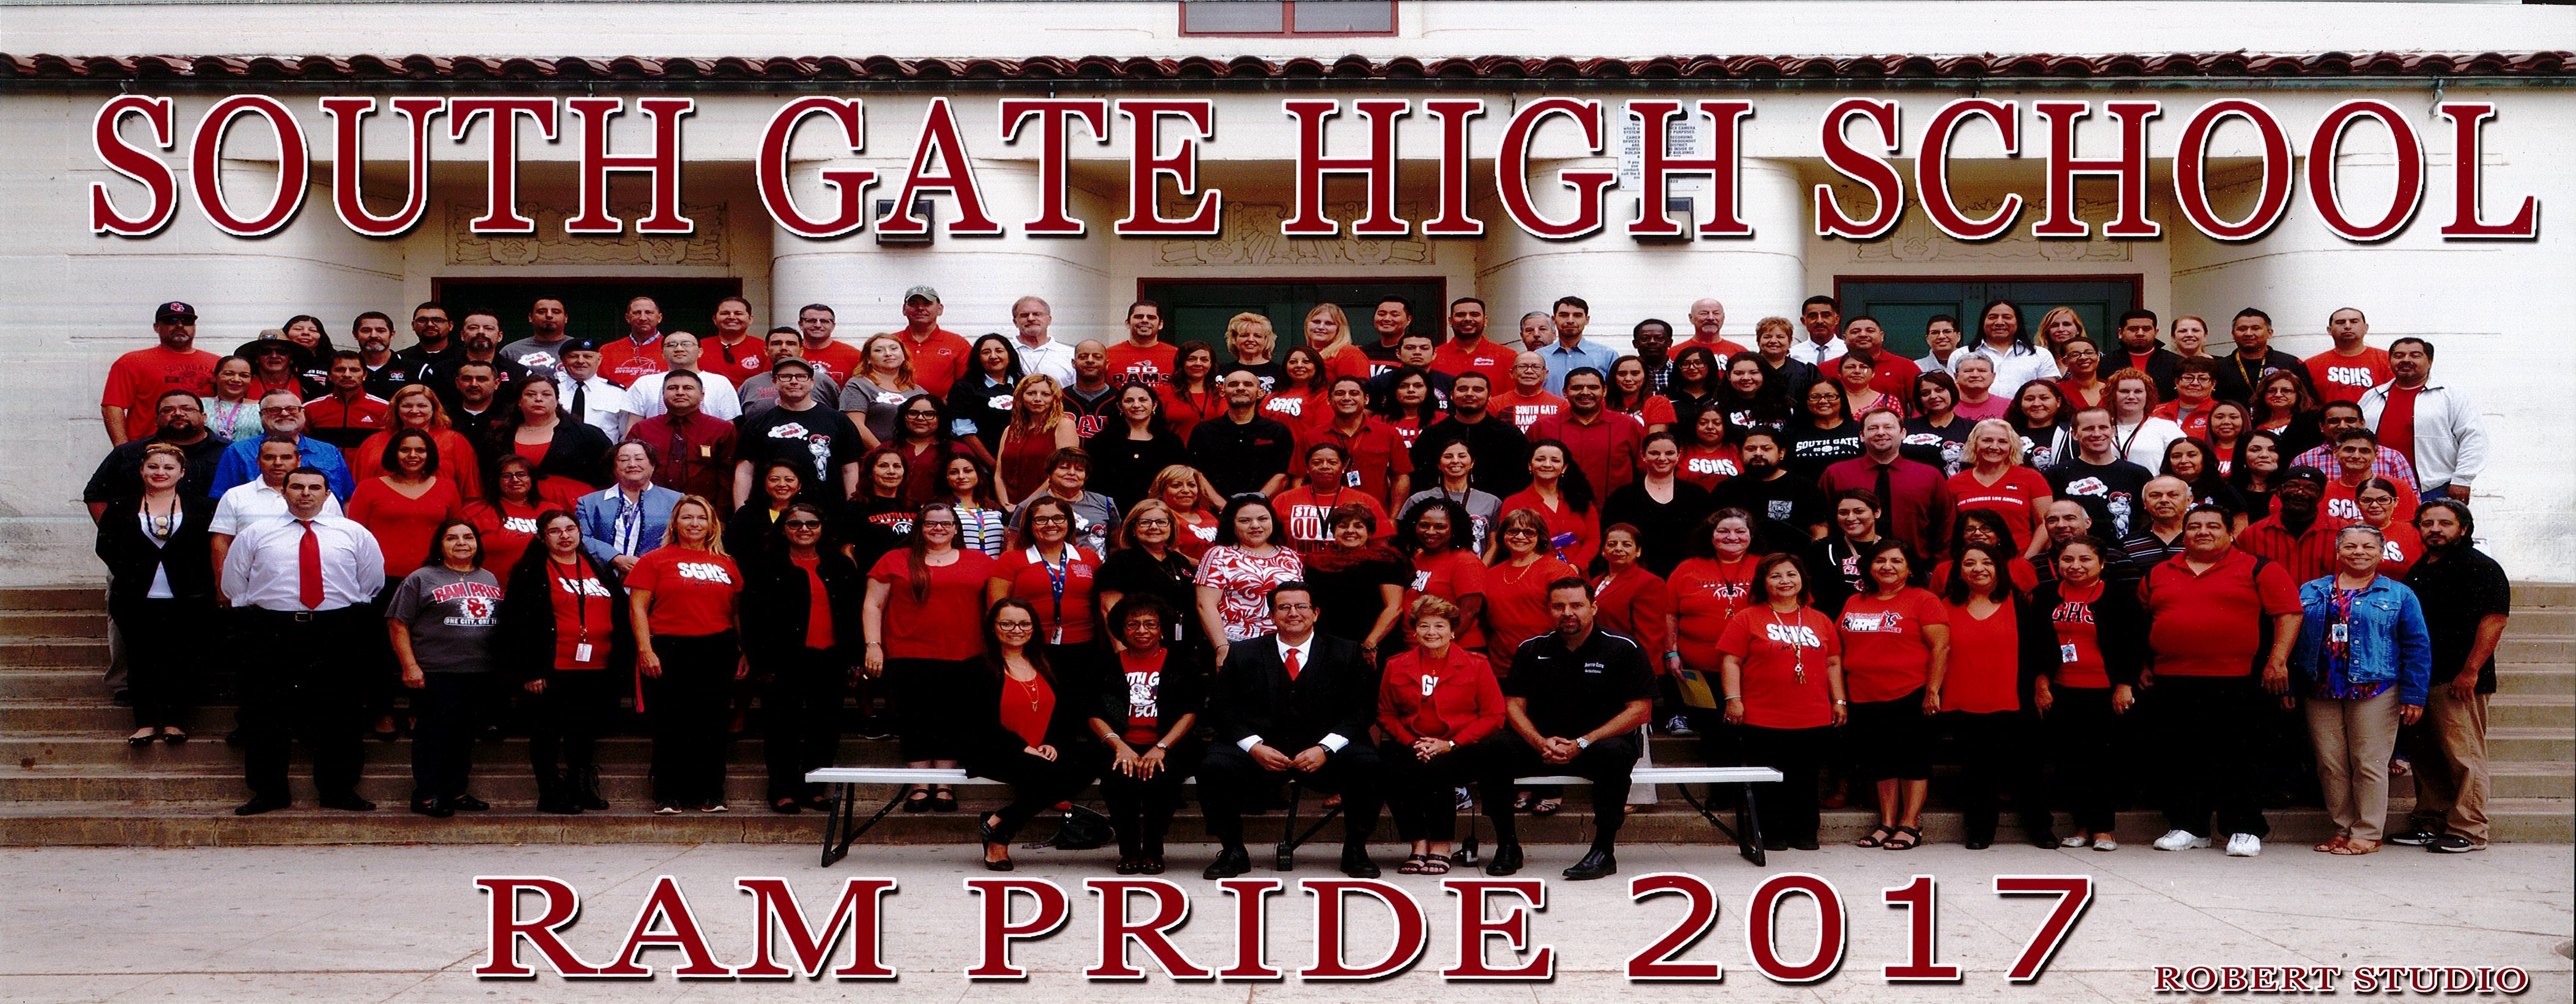 2017 Faculty Picture